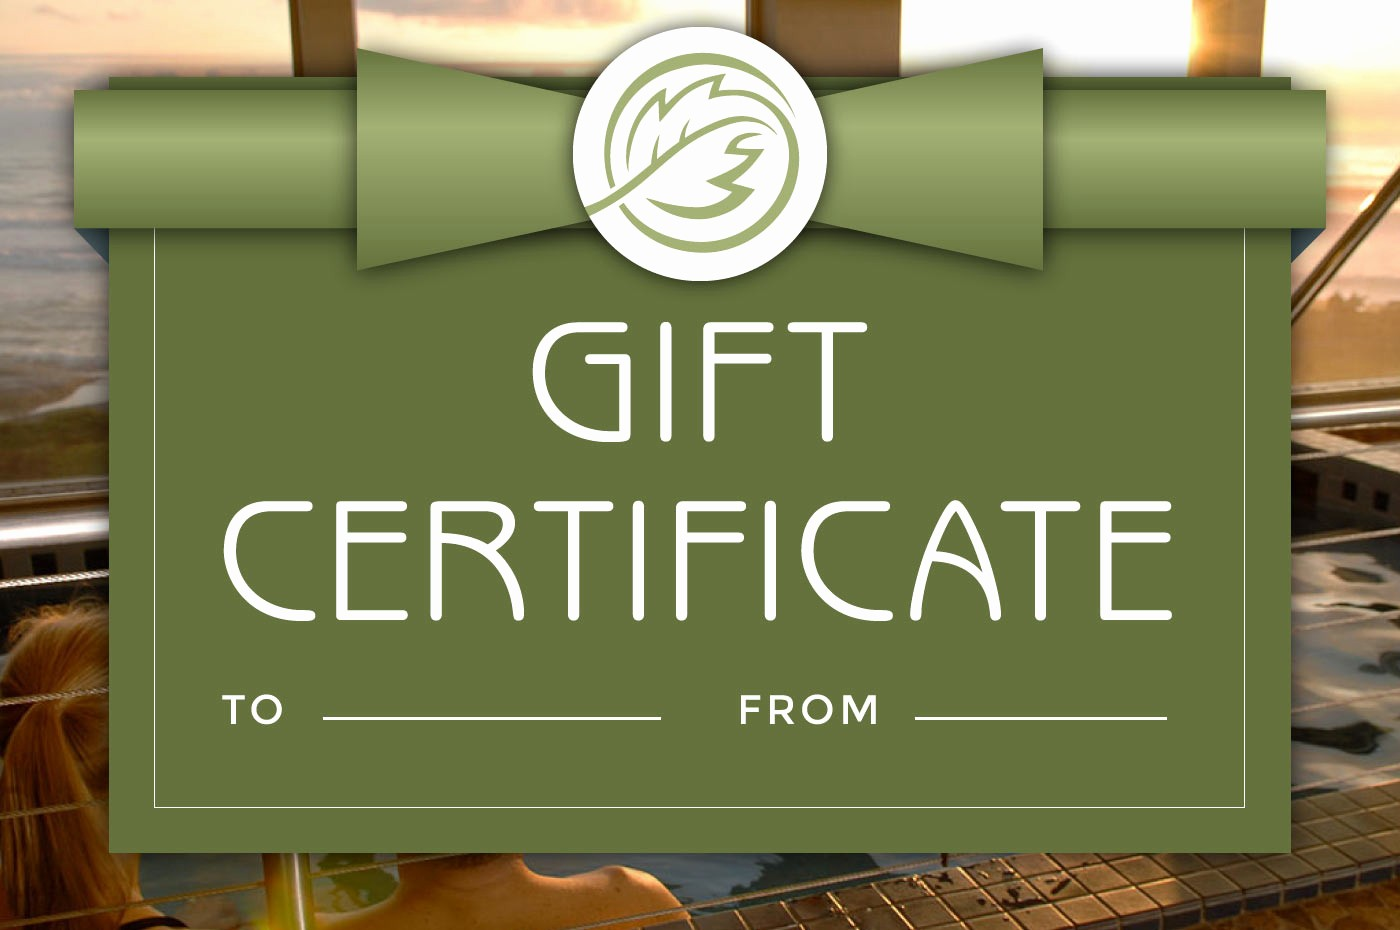 How to Make Gift Certificate Lovely Spa Promotions